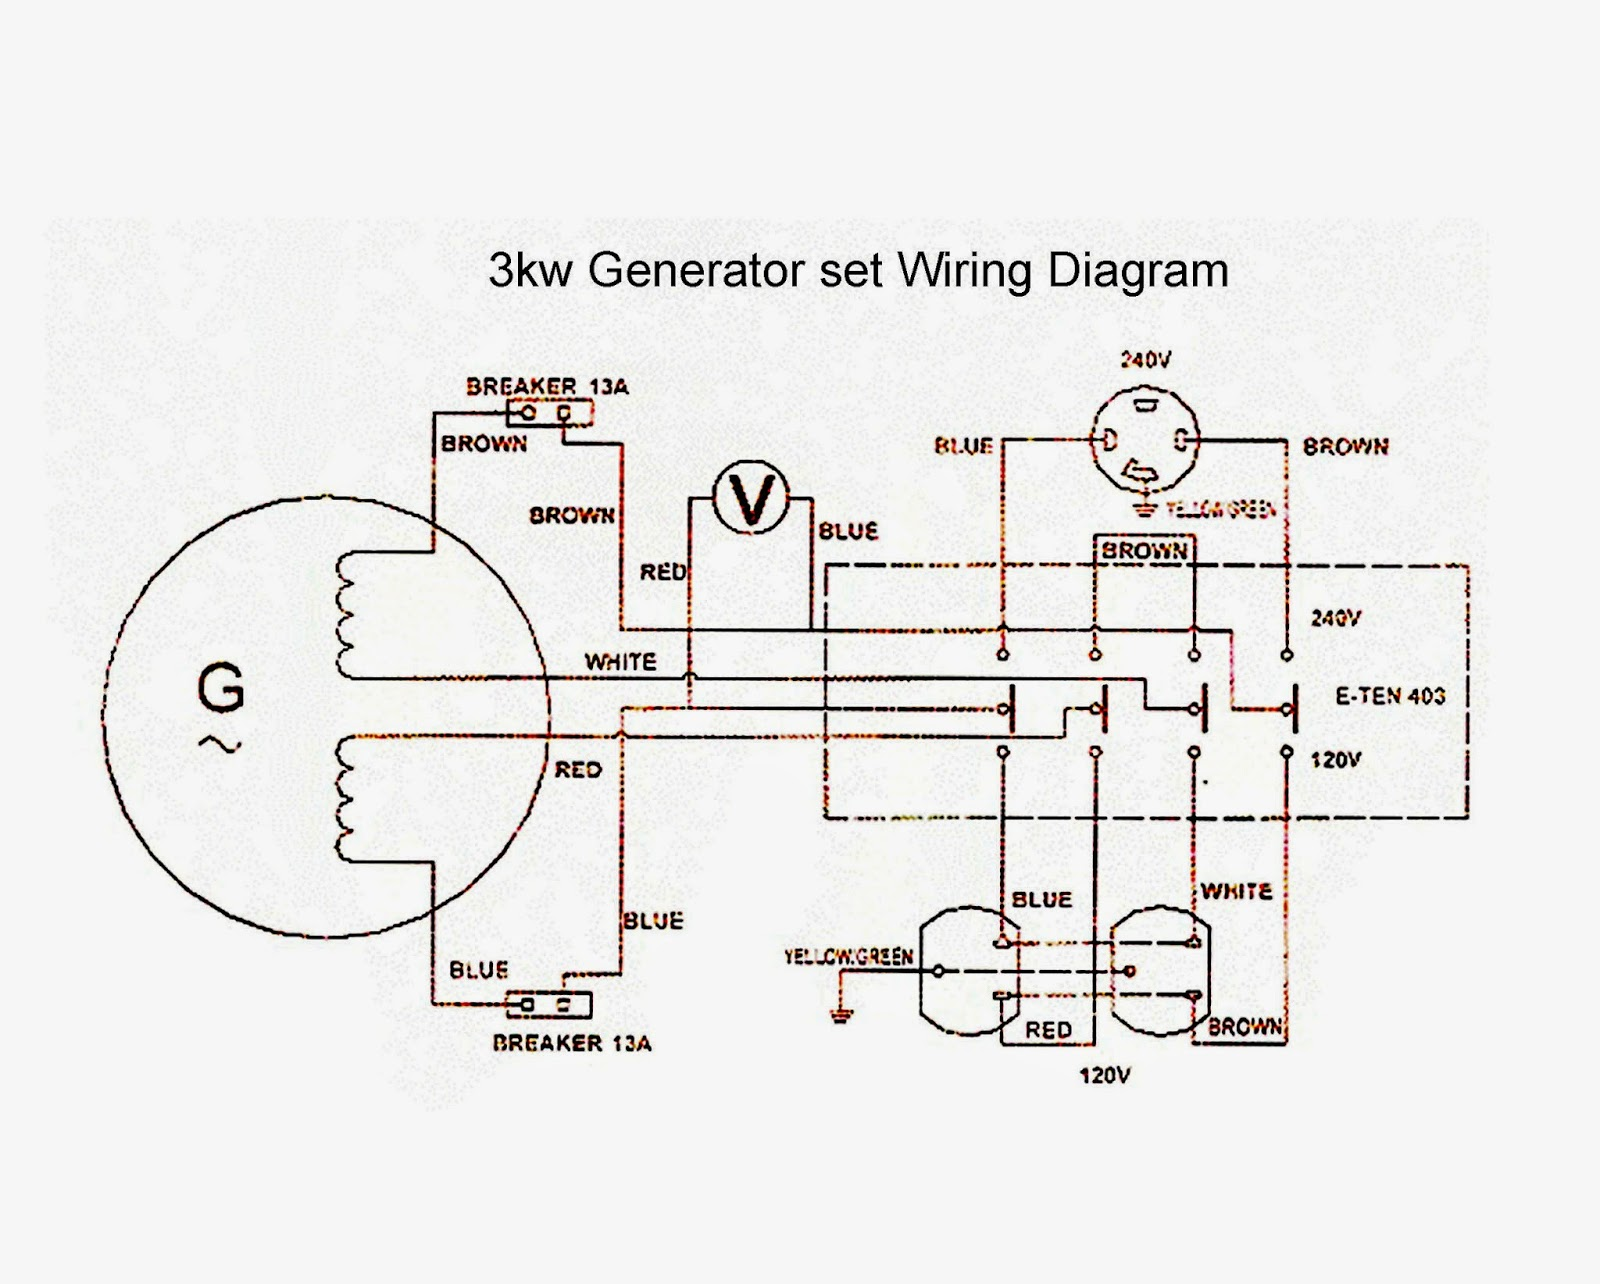 Wiring Diagram Generator Voltage Regulator : Car generator wiring diagram get free image about